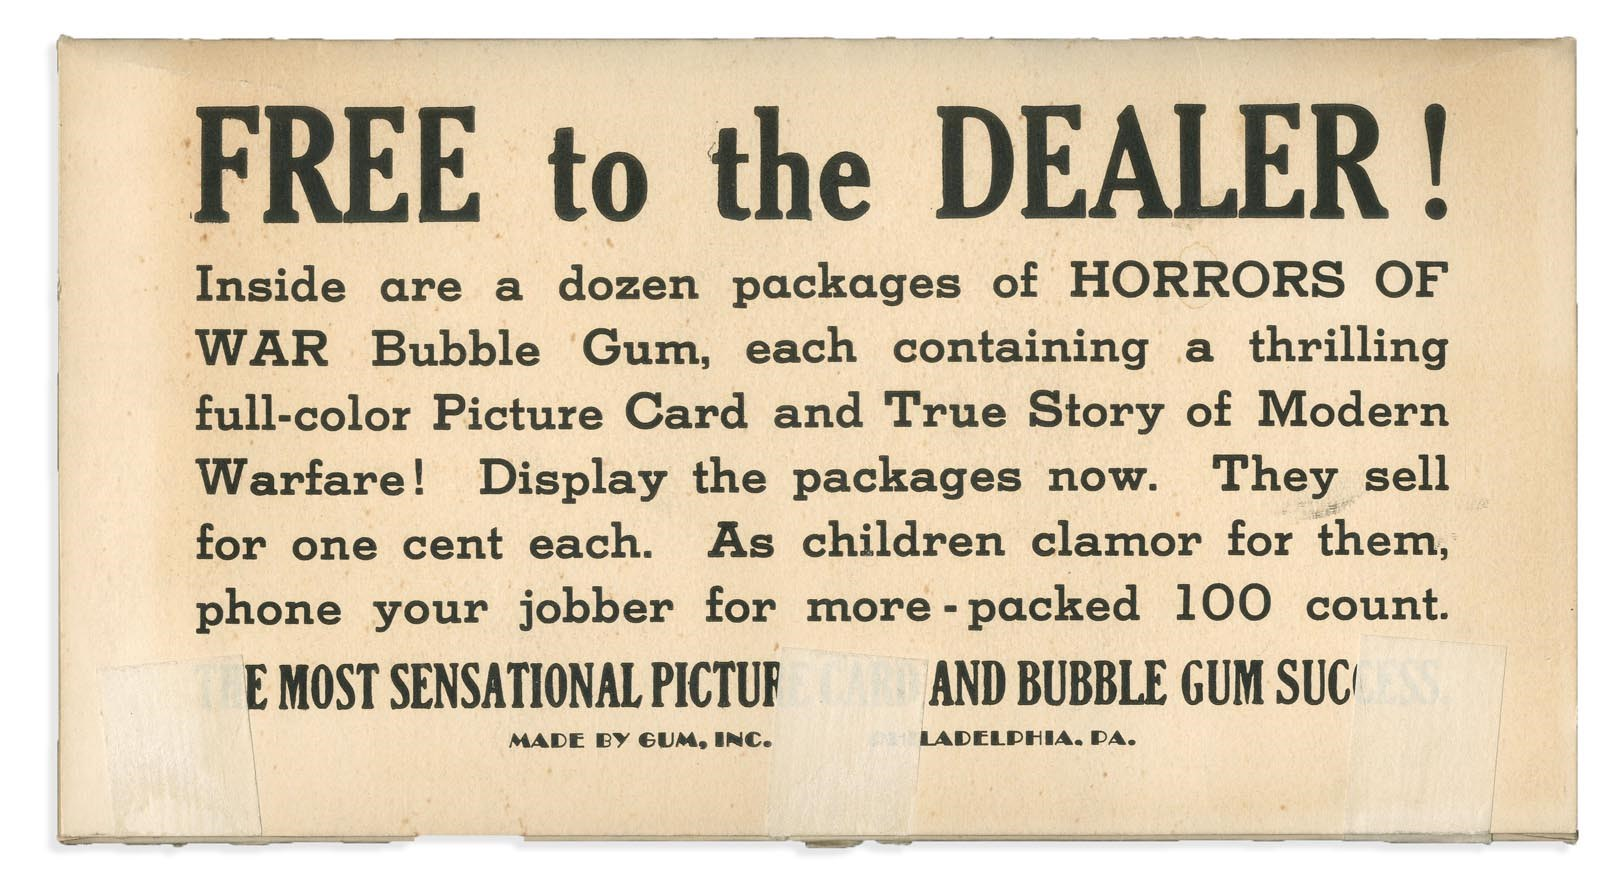 1937 Gum Inc. Horrors of War Folder/Box - Only One Known